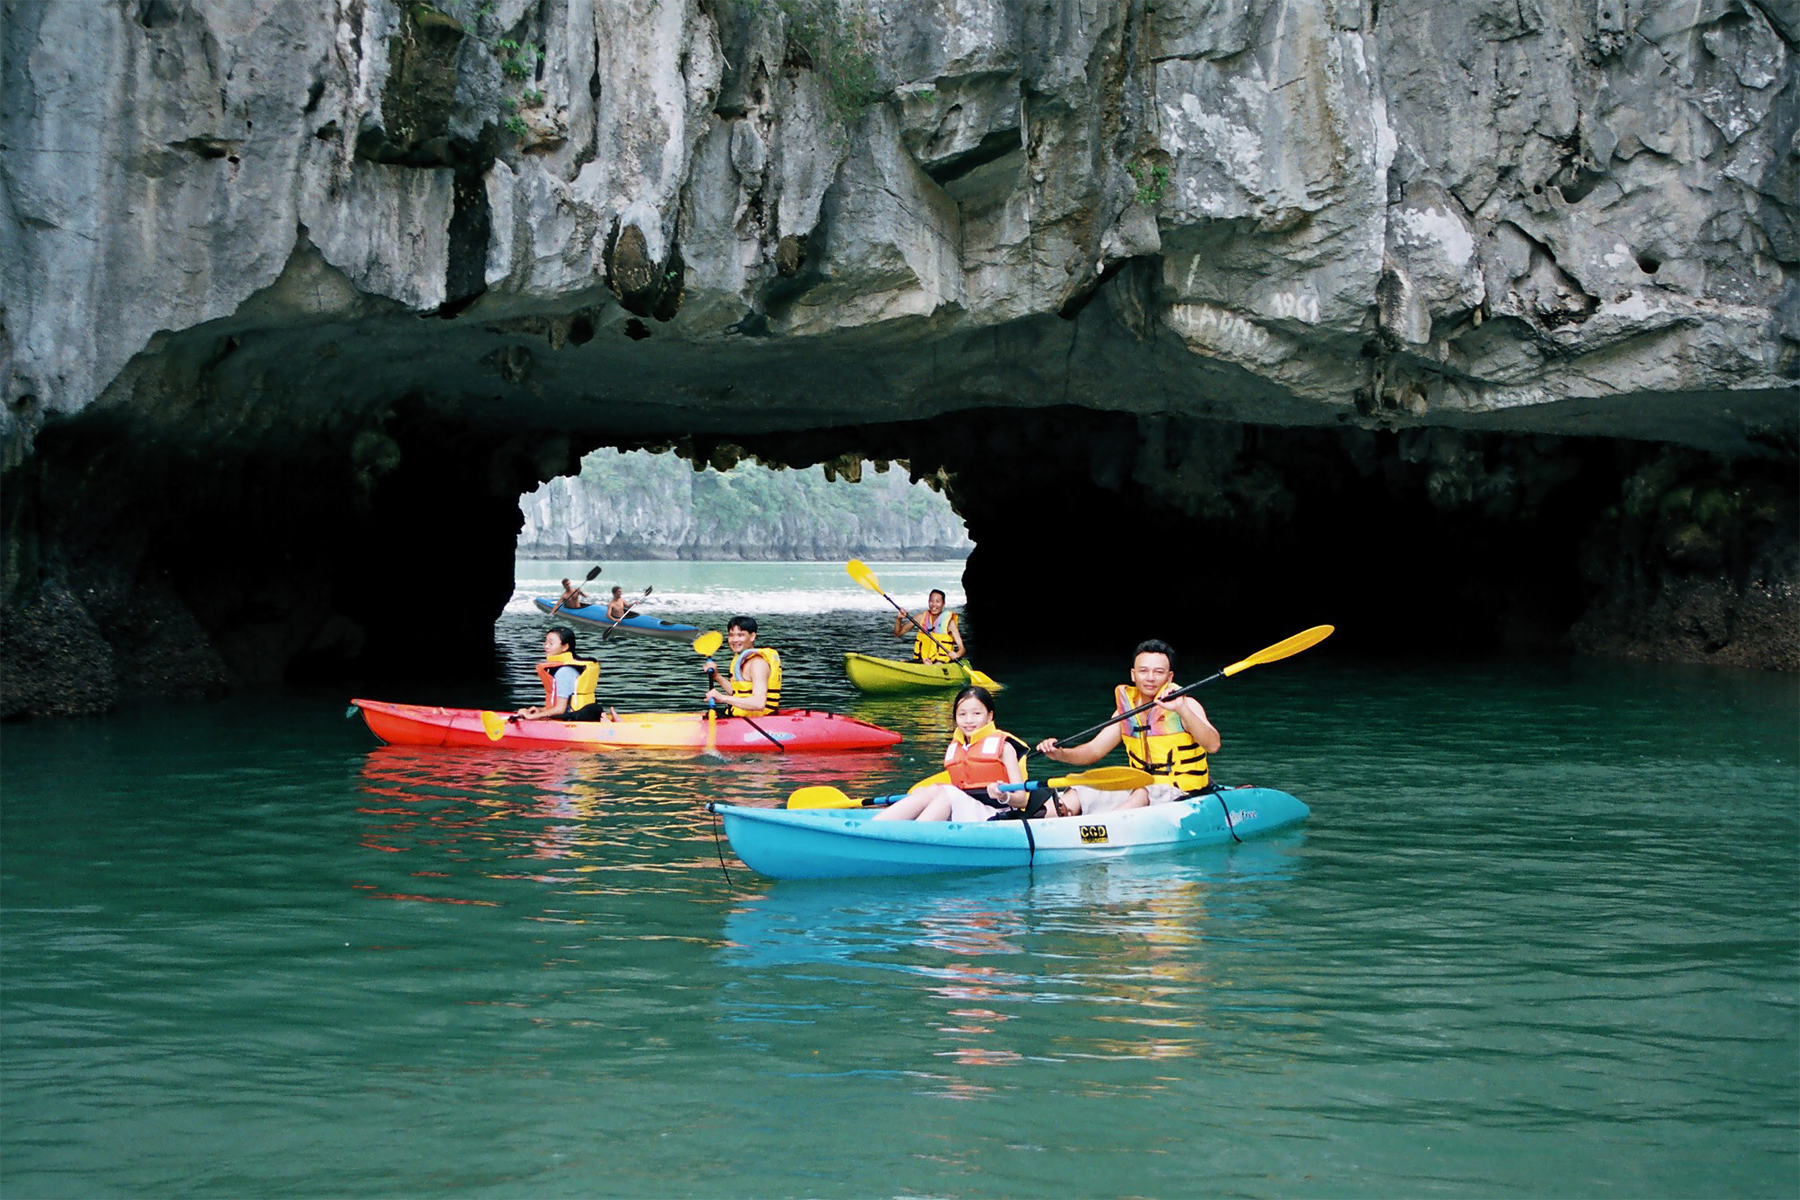 Luon Cave - Halong Bay Cave worth visiting 2020